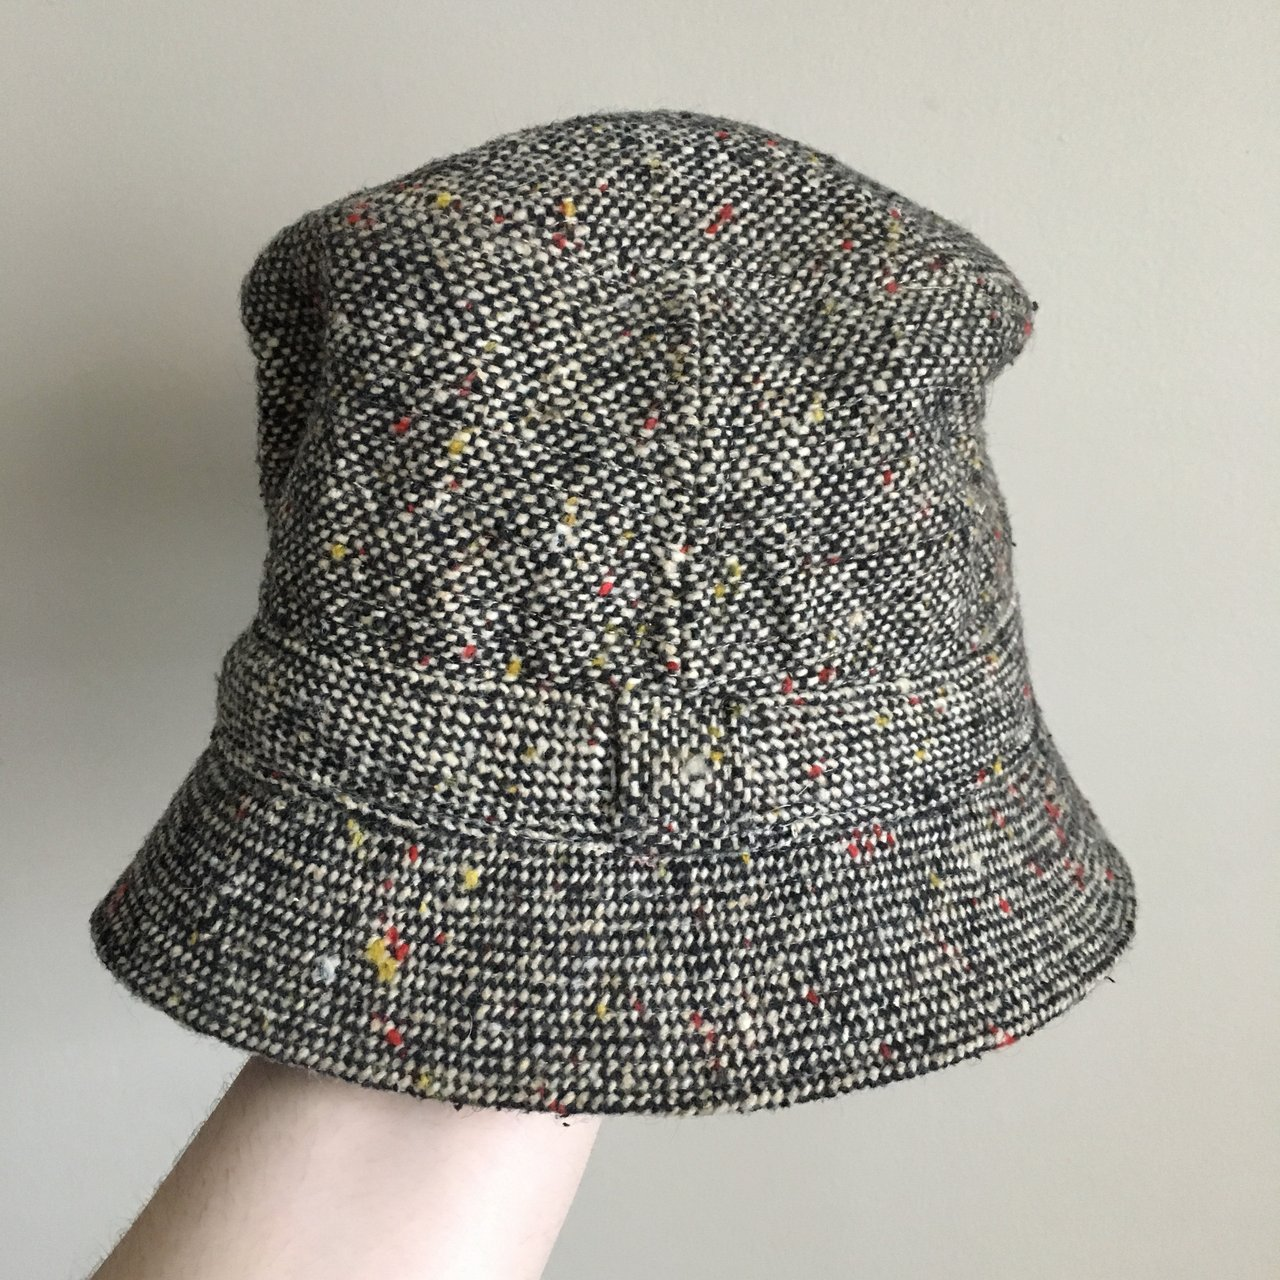 7657d8b9 Vintage, The Irish Walking Hat, tag reads: Union Made. Size - Depop